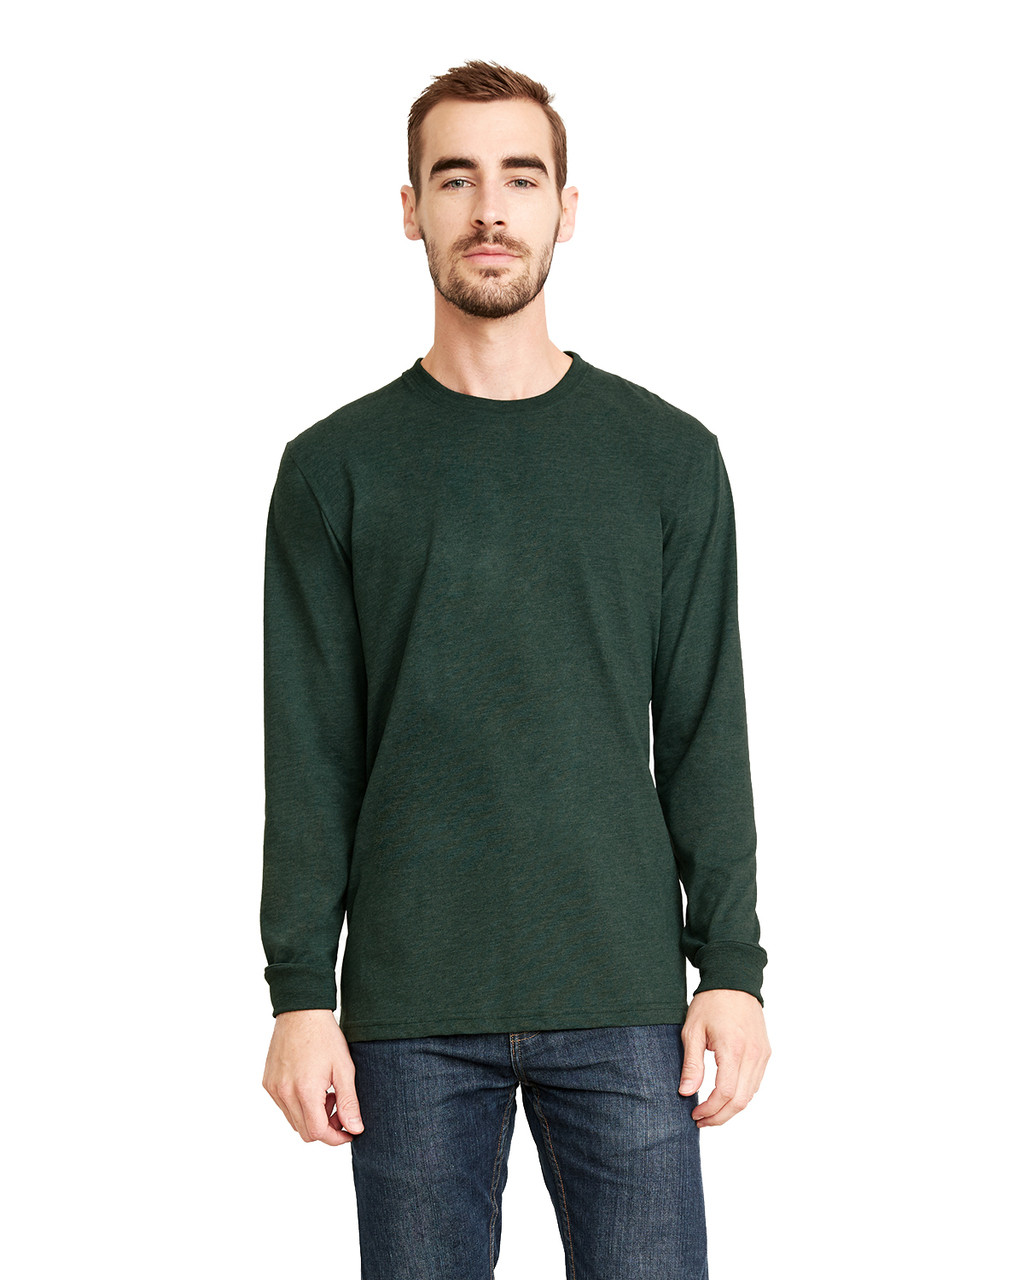 Heather Forest Green - 6411 Next Level Unisex Sueded Long-Sleeve Crew Shirt | Blankclothing.ca